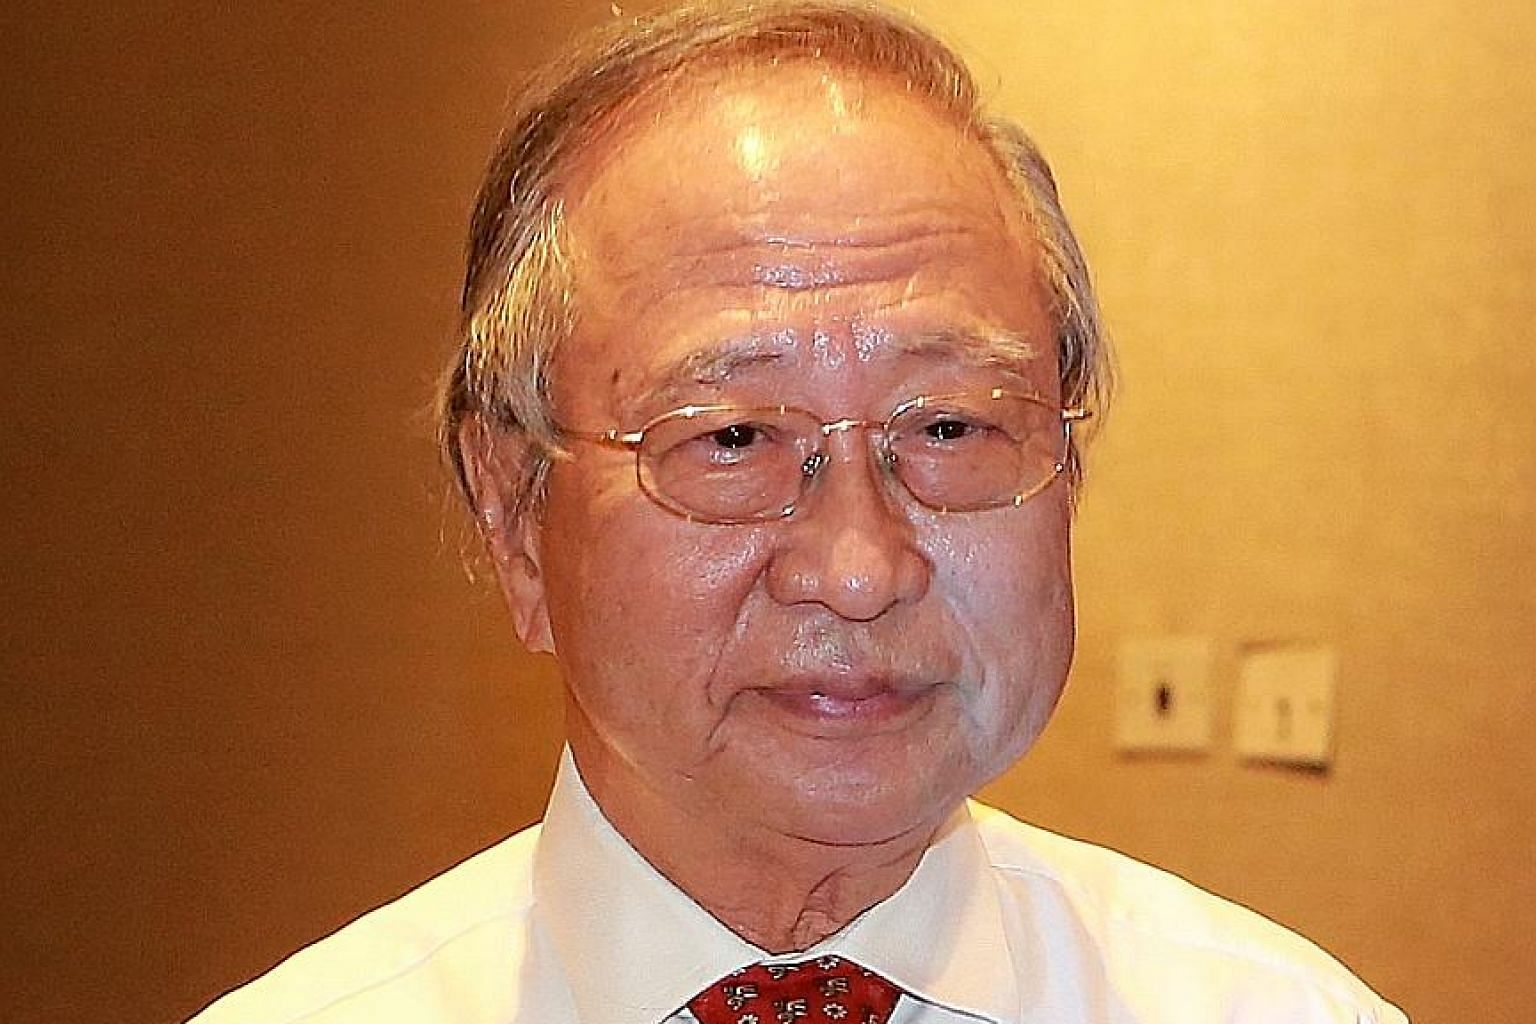 Dr Tan Cheng Bock argued that the reserved election should start in 2023 at the earliest.